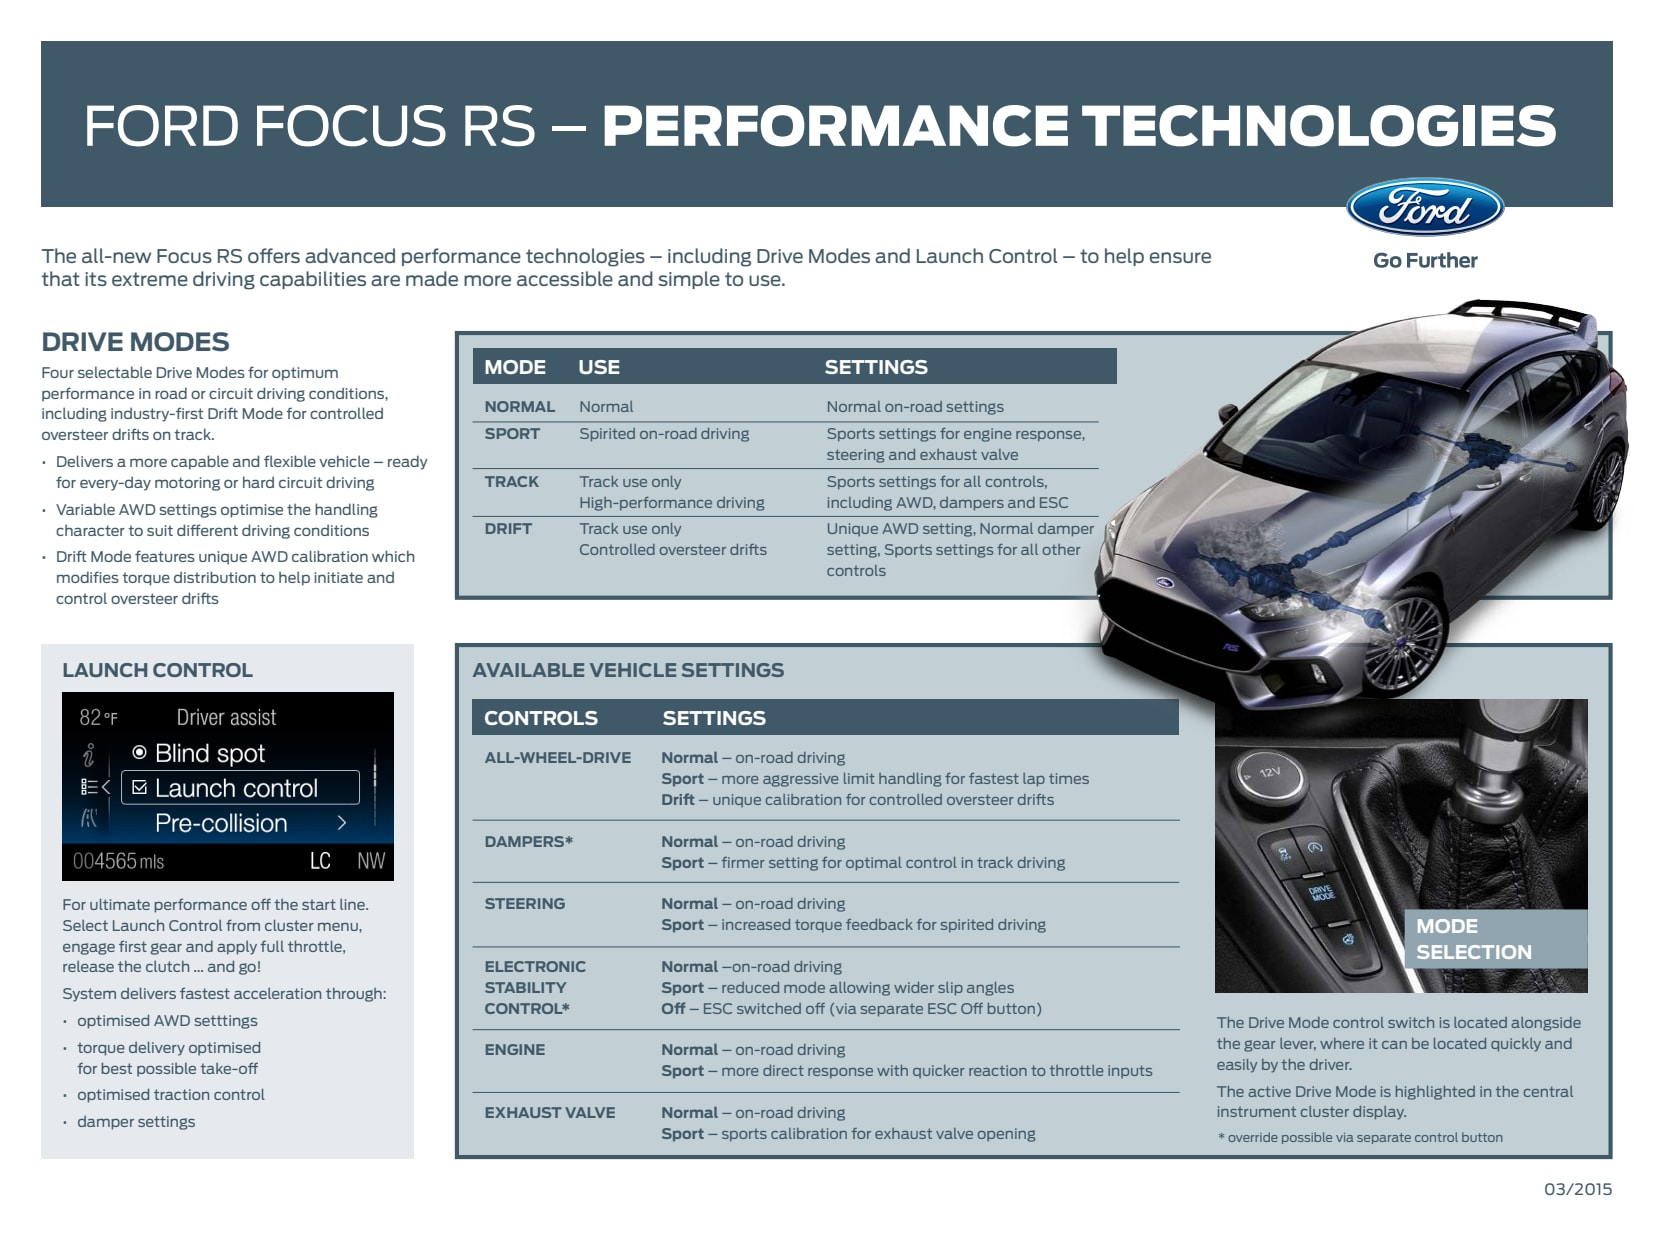 Ford focus rs performance technologies ford motor company Ford motor company technology